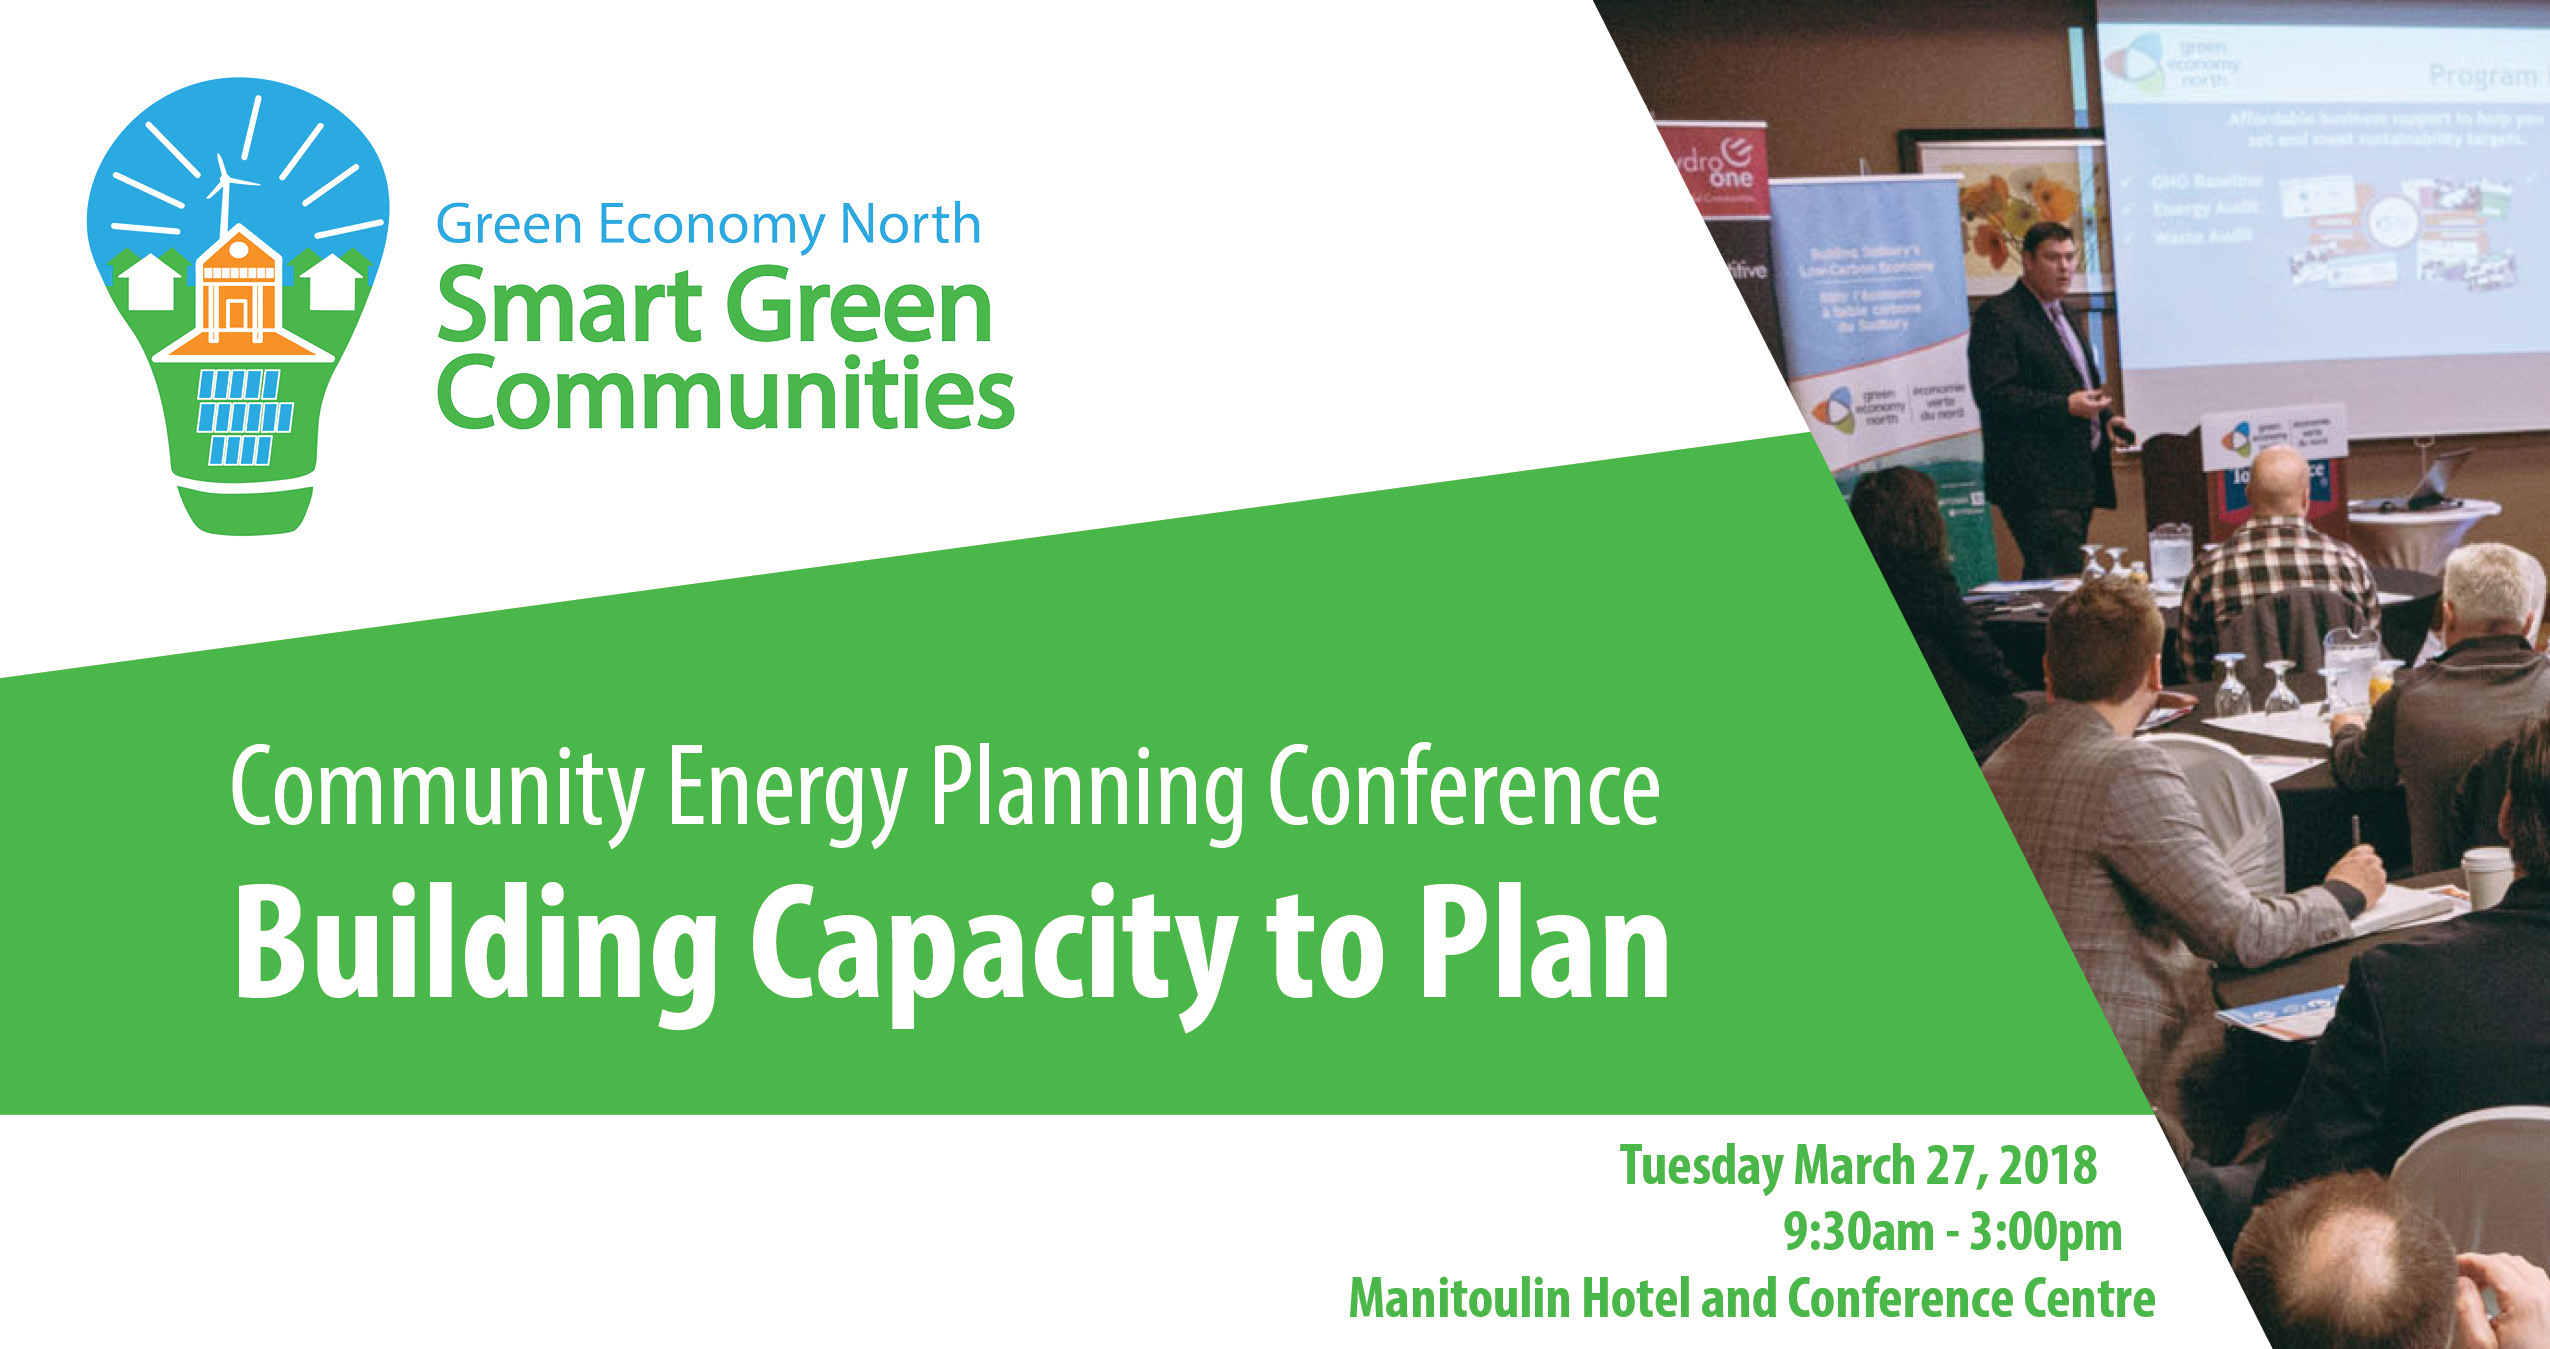 Building Capacity to Plan conference